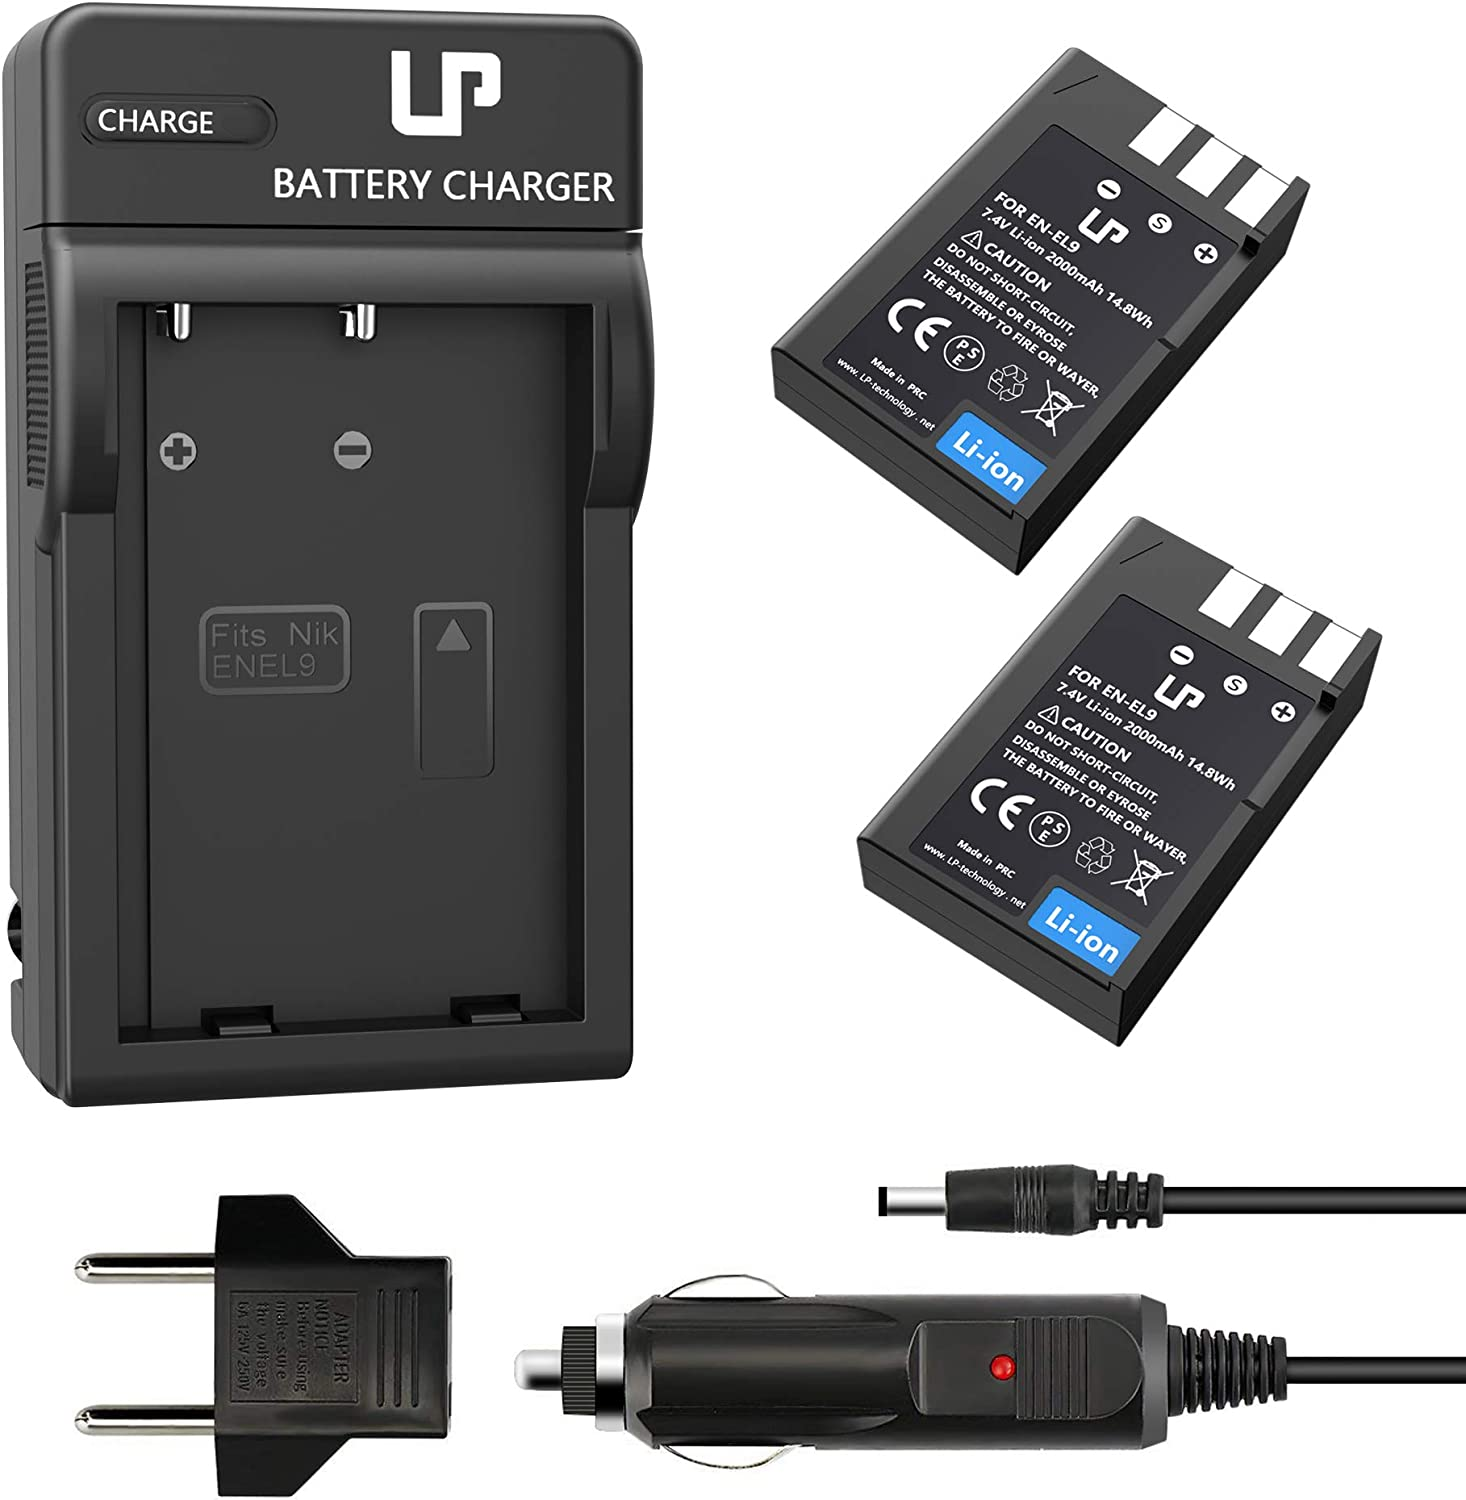 EN-EL9 EN EL9a Battery Charger Pack, LP 2-Pack Battery & Charger, Compatible with Nikon D40, D40X, D60, D3000, D5000 Cameras, Replacement for MH-23